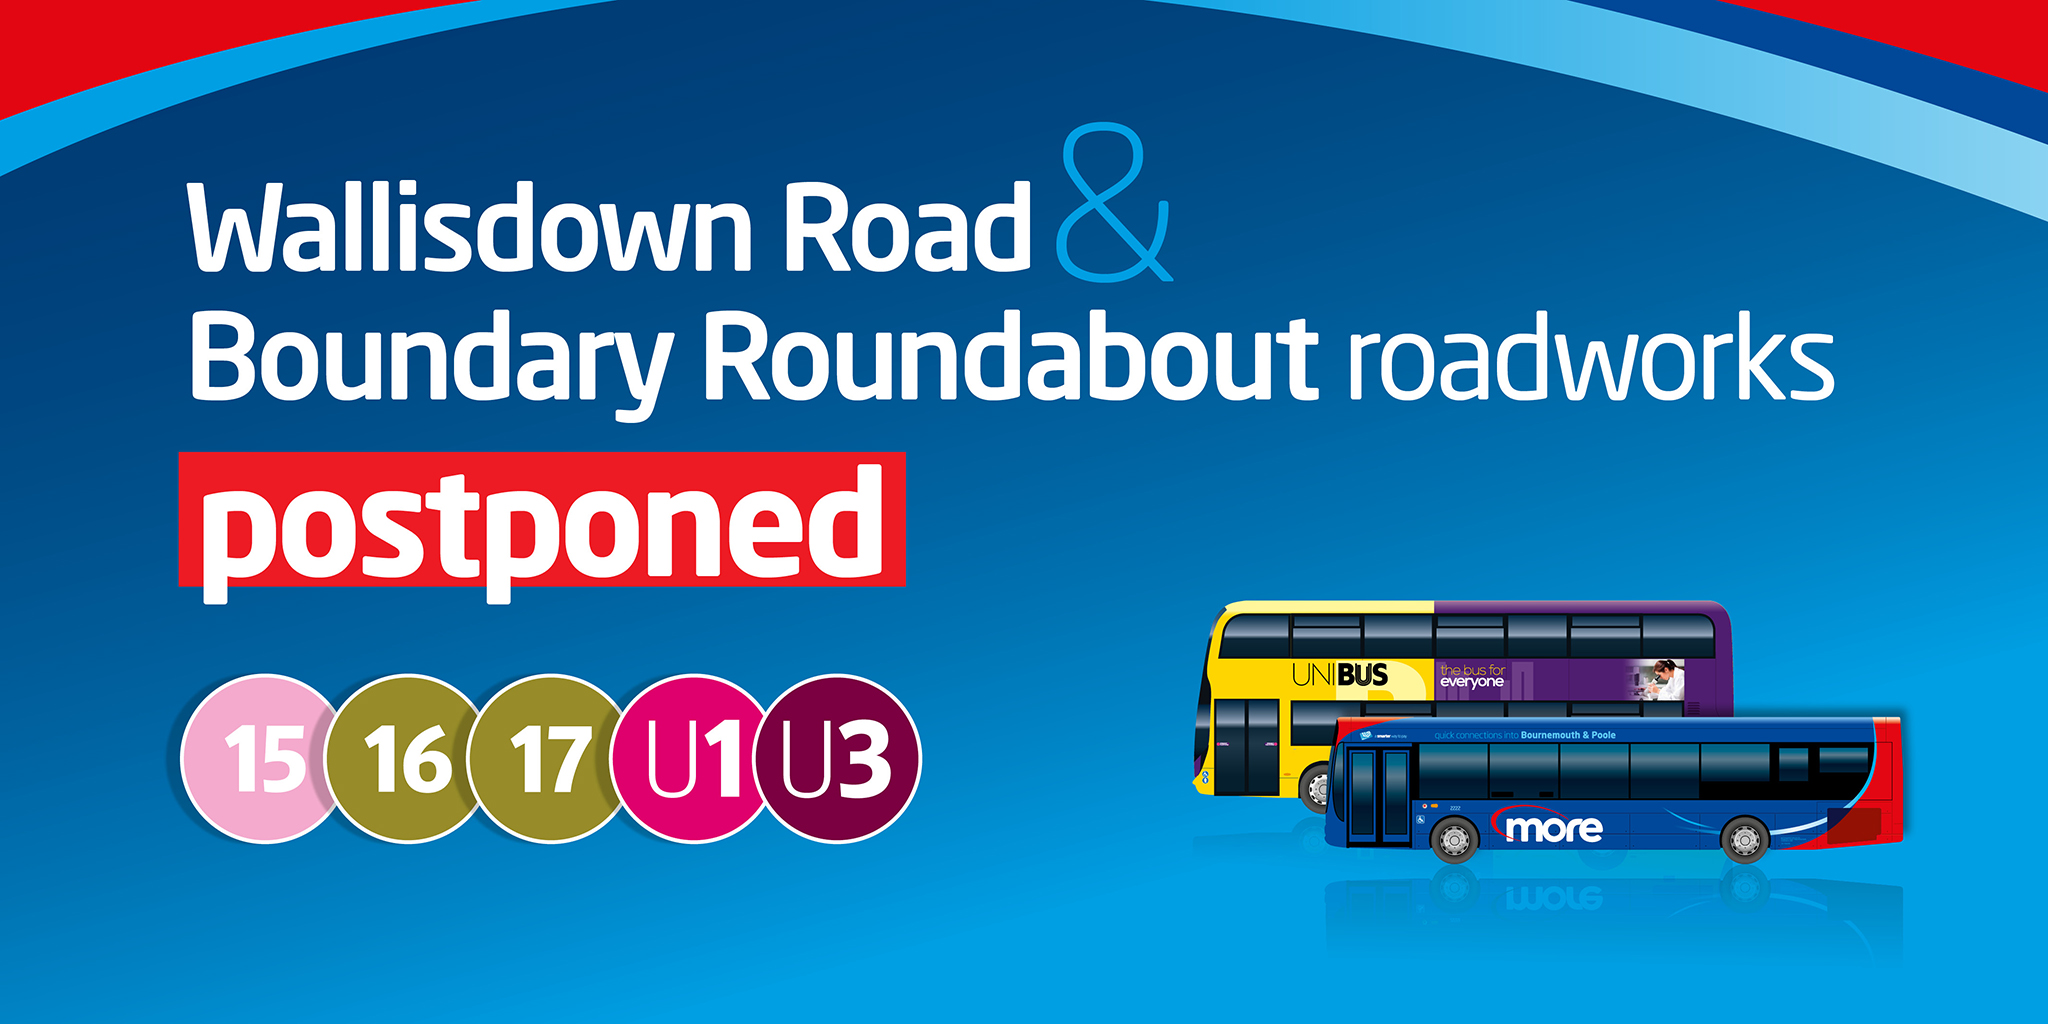 Image reading 'Wallisdown Road & Boundary Roundabout roadworks postponed'